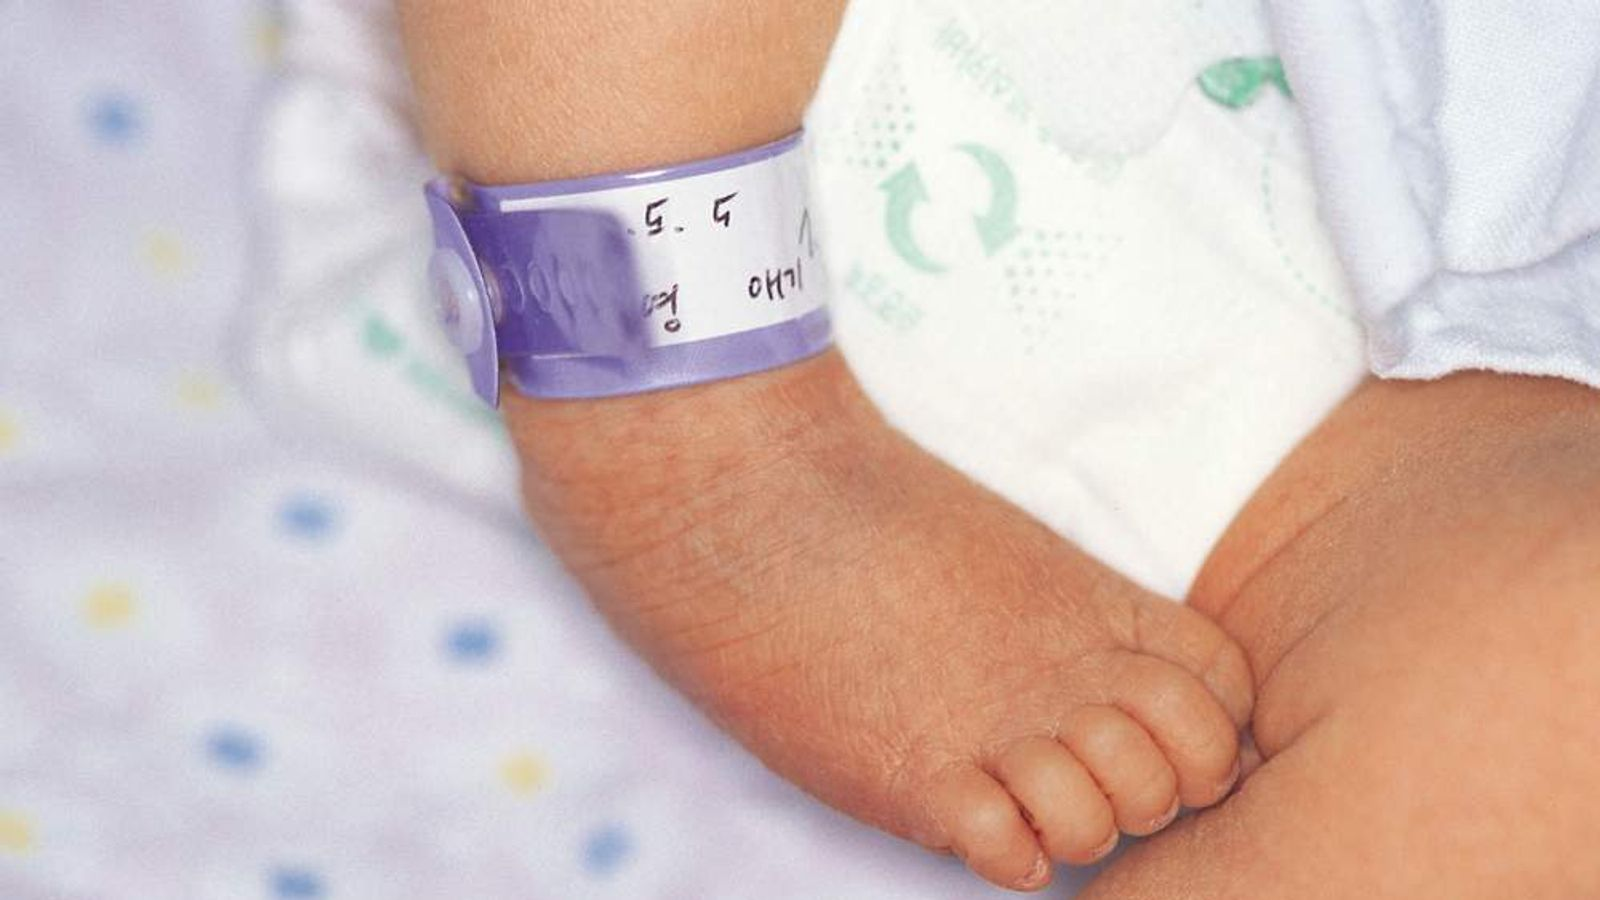 Man swapped at birth wins compensation